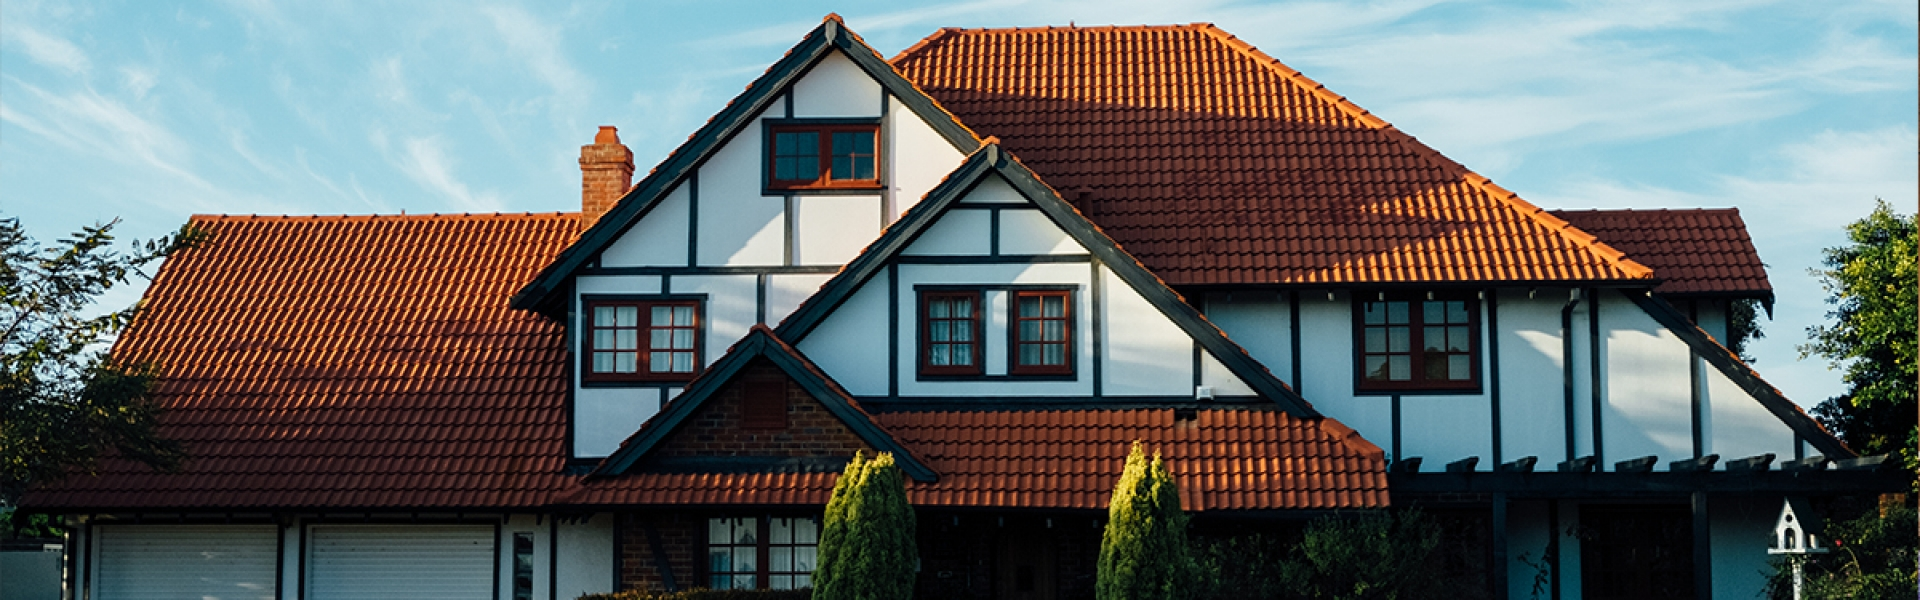 How To Choose The Right Roofing Shingles | Roofing Boise